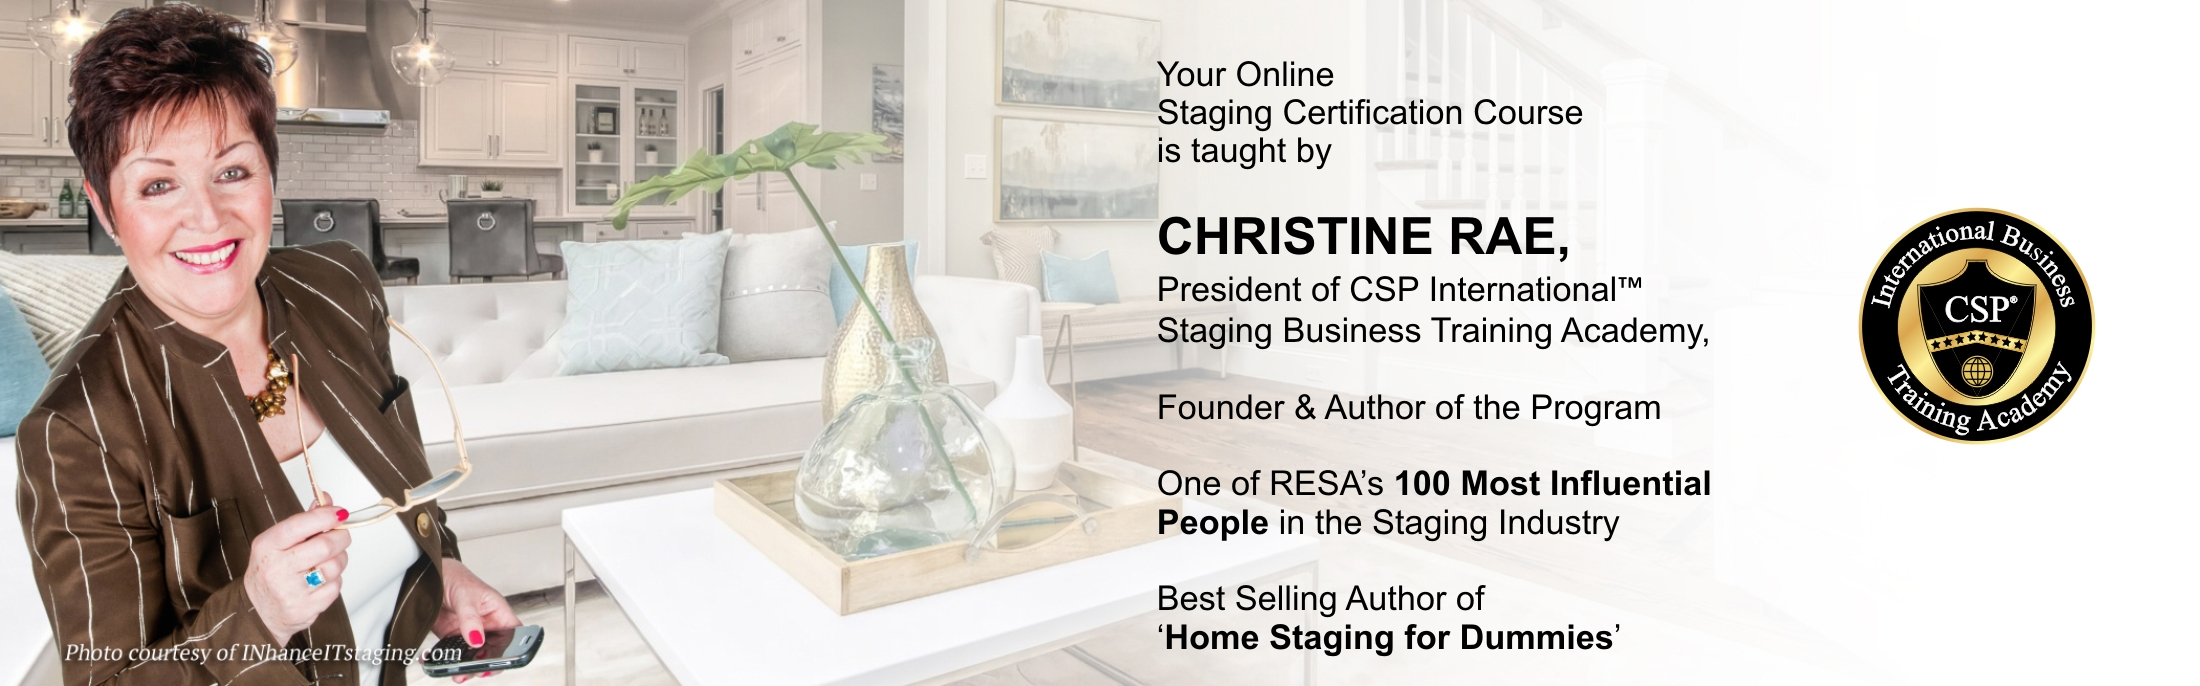 Christine Rae teaches online staging certification